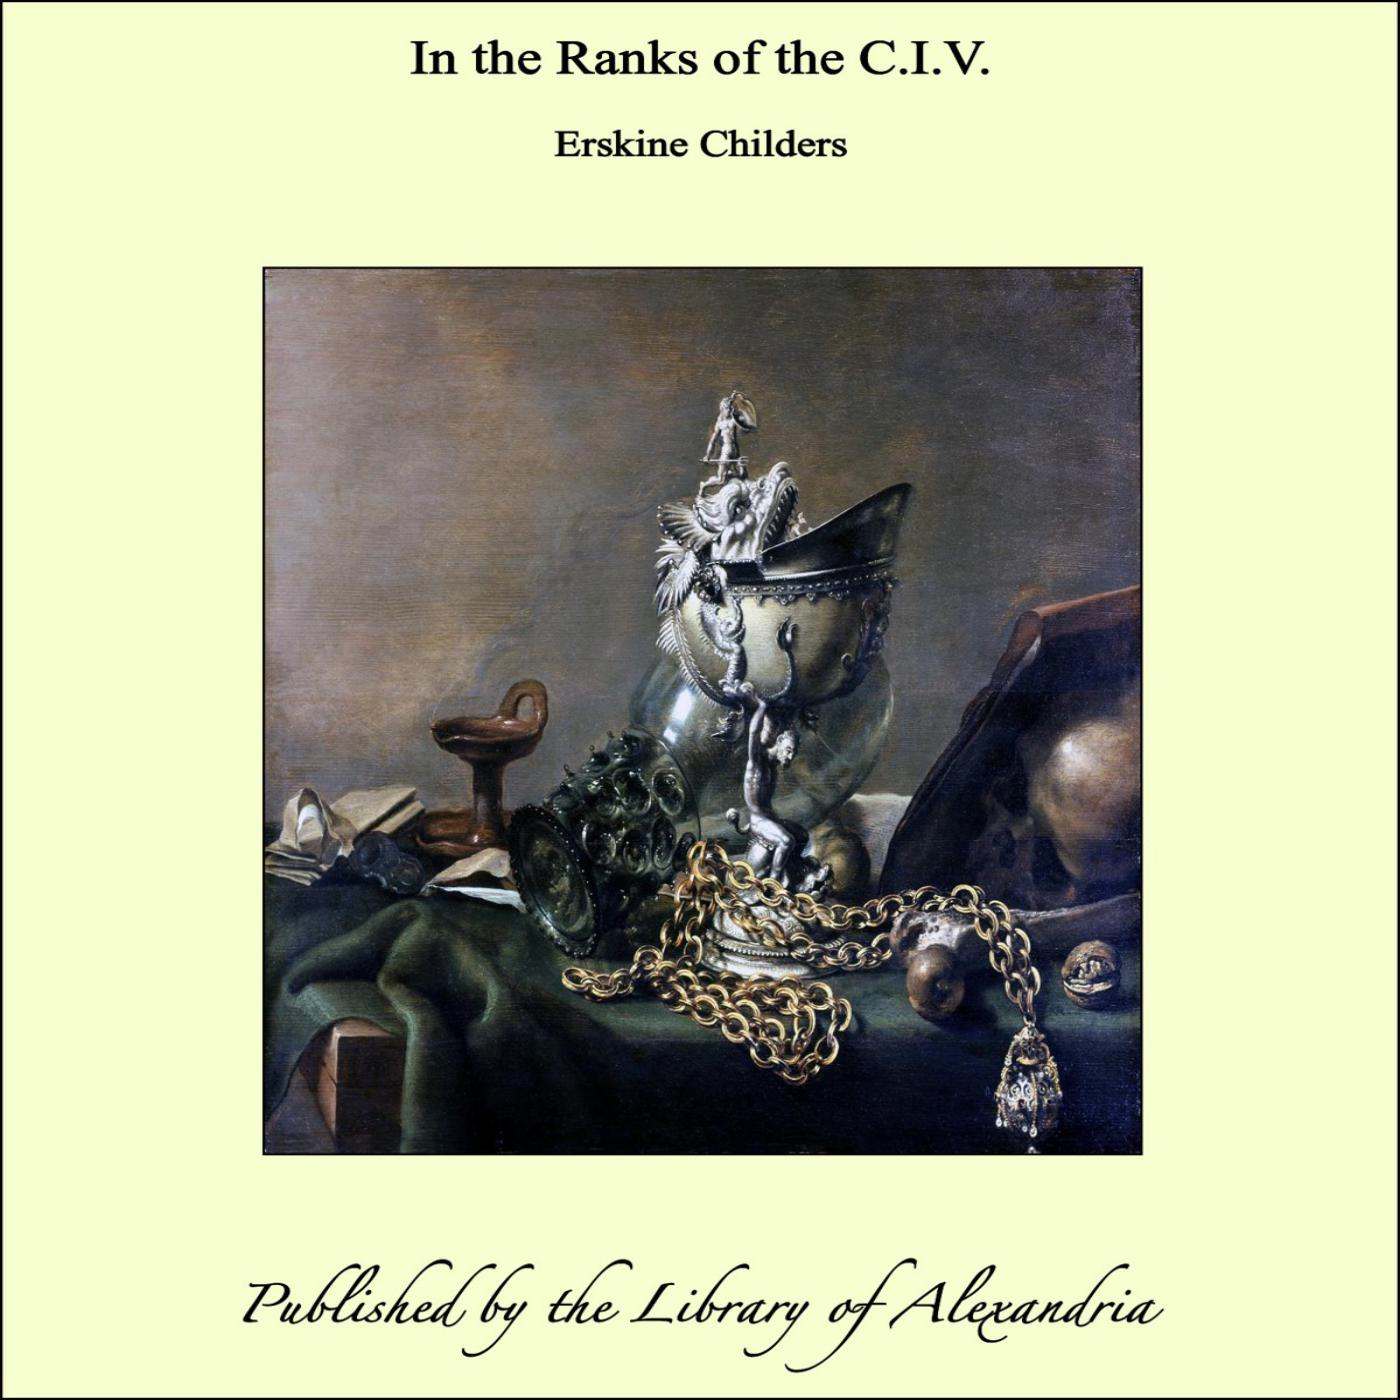 In the Ranks of the C.I.V. By: Erskine Childers